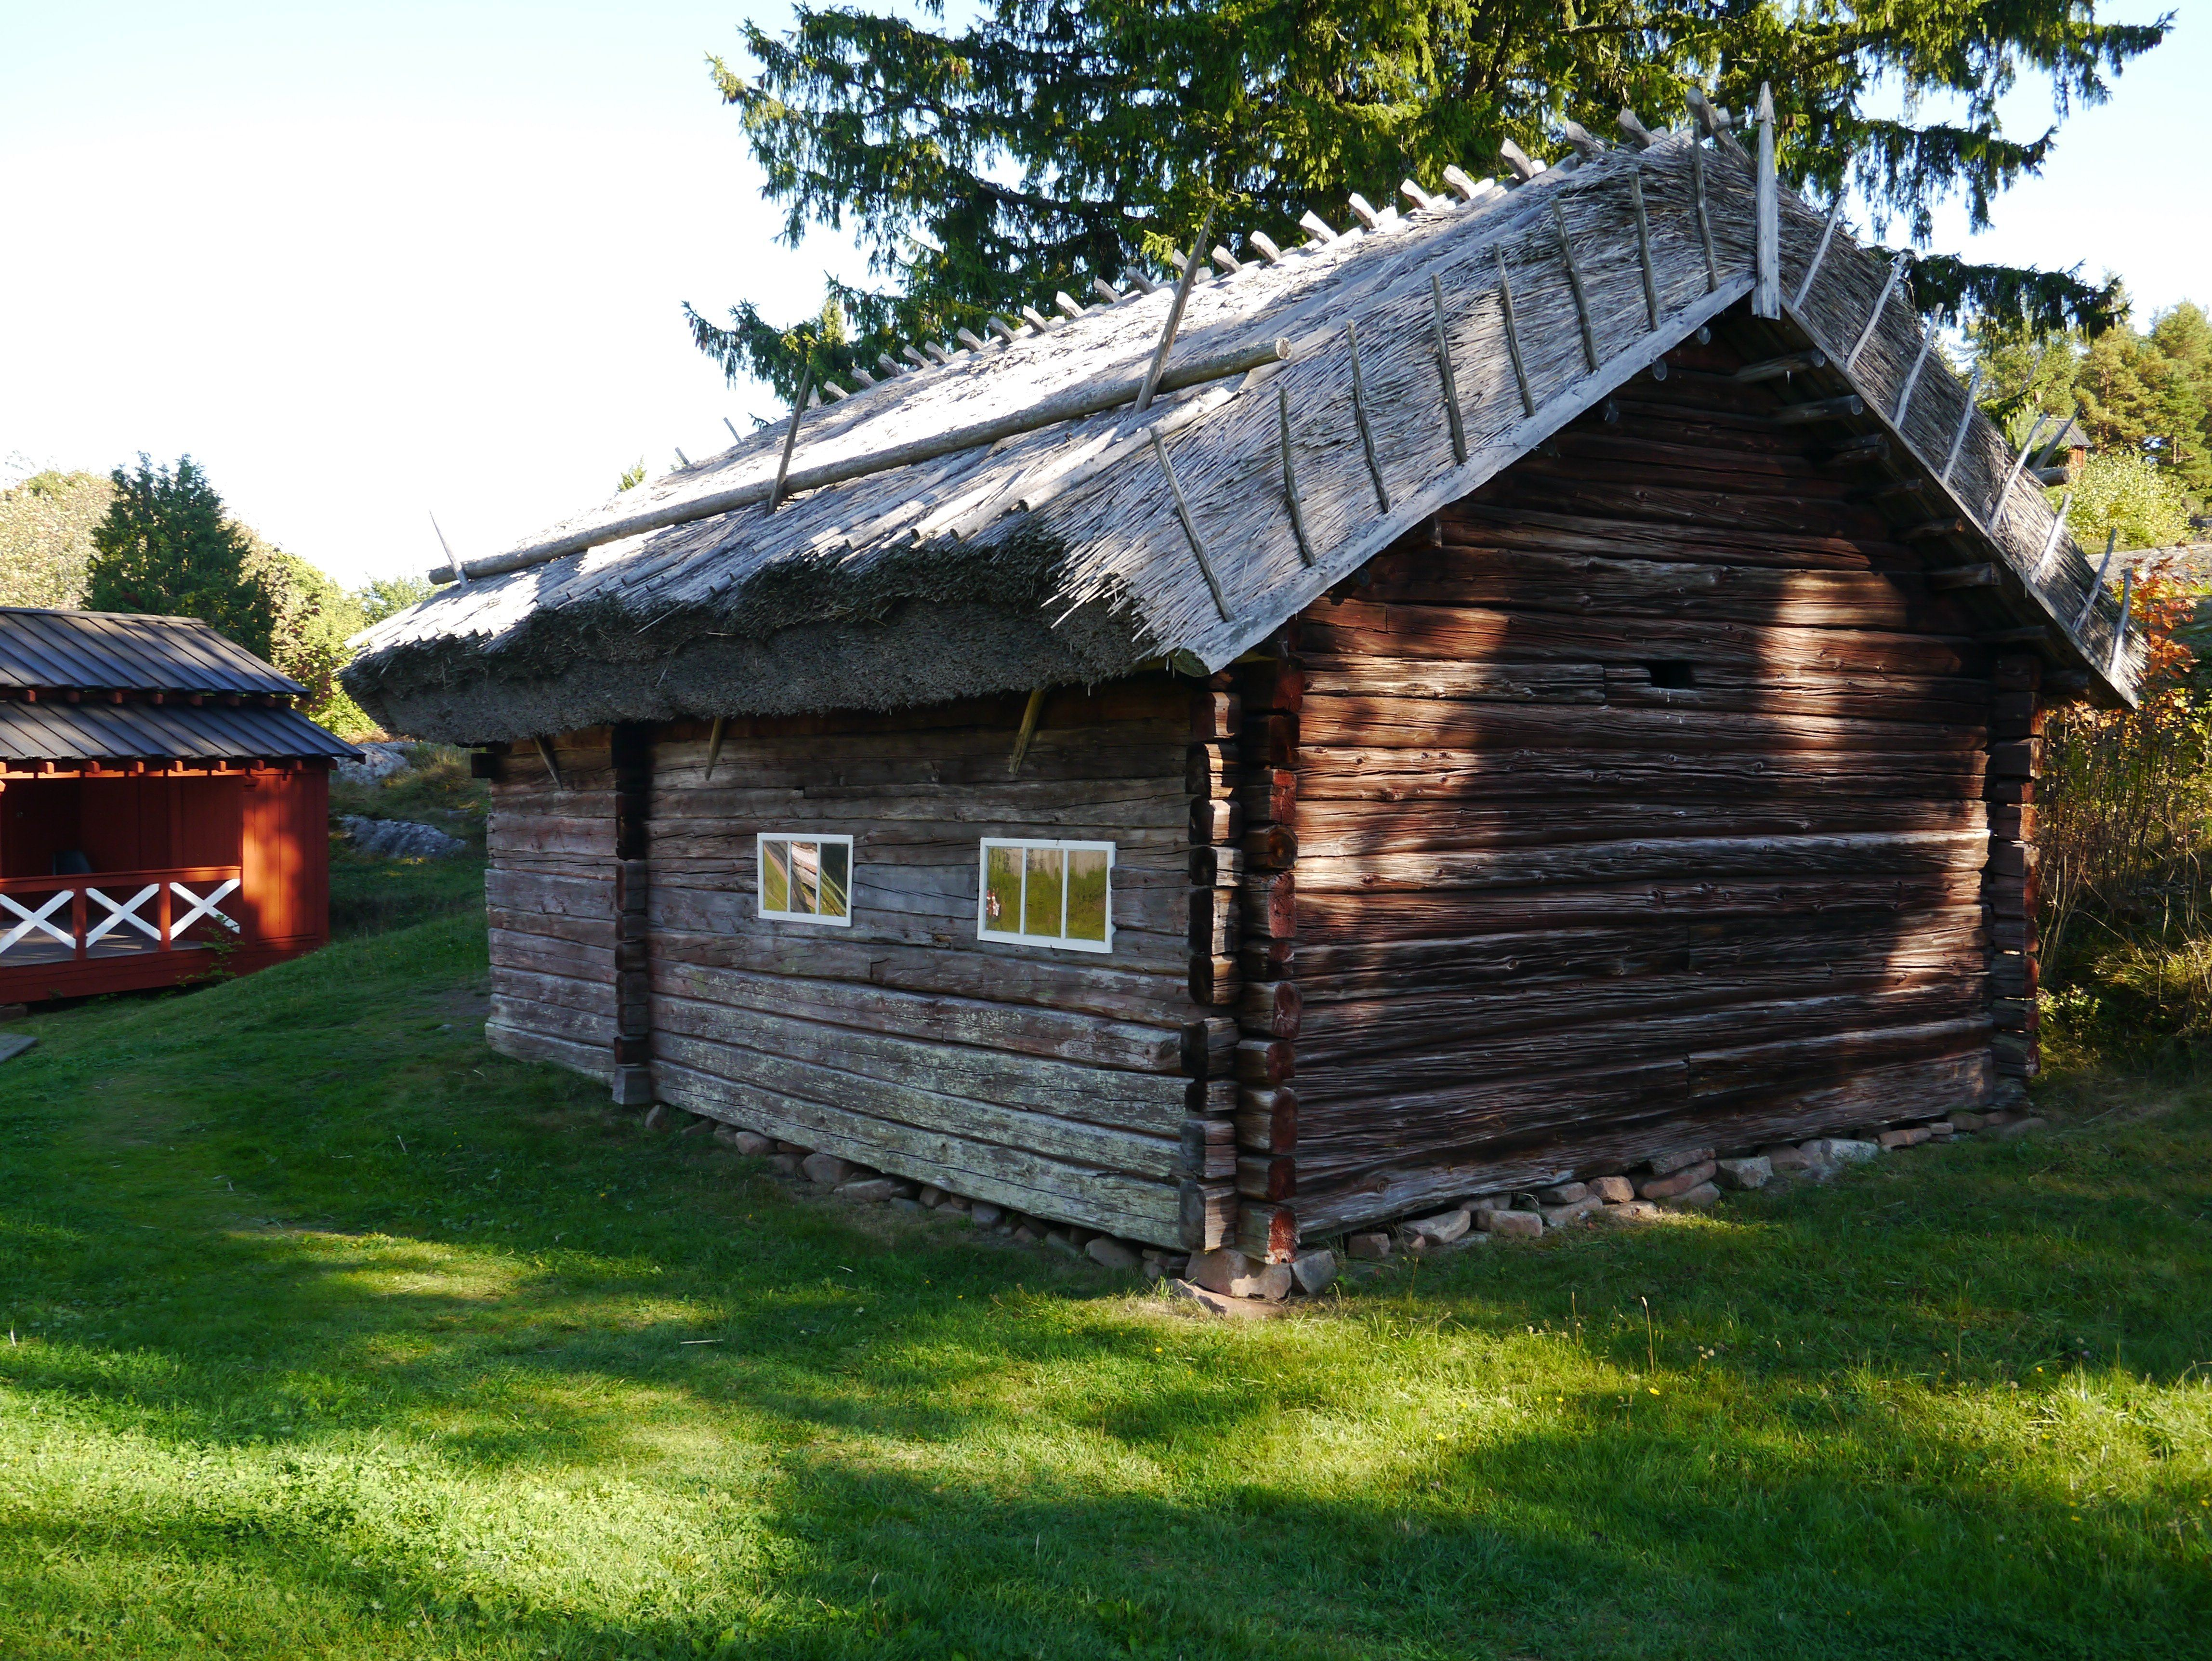 Jan Karlsgården open-air museum